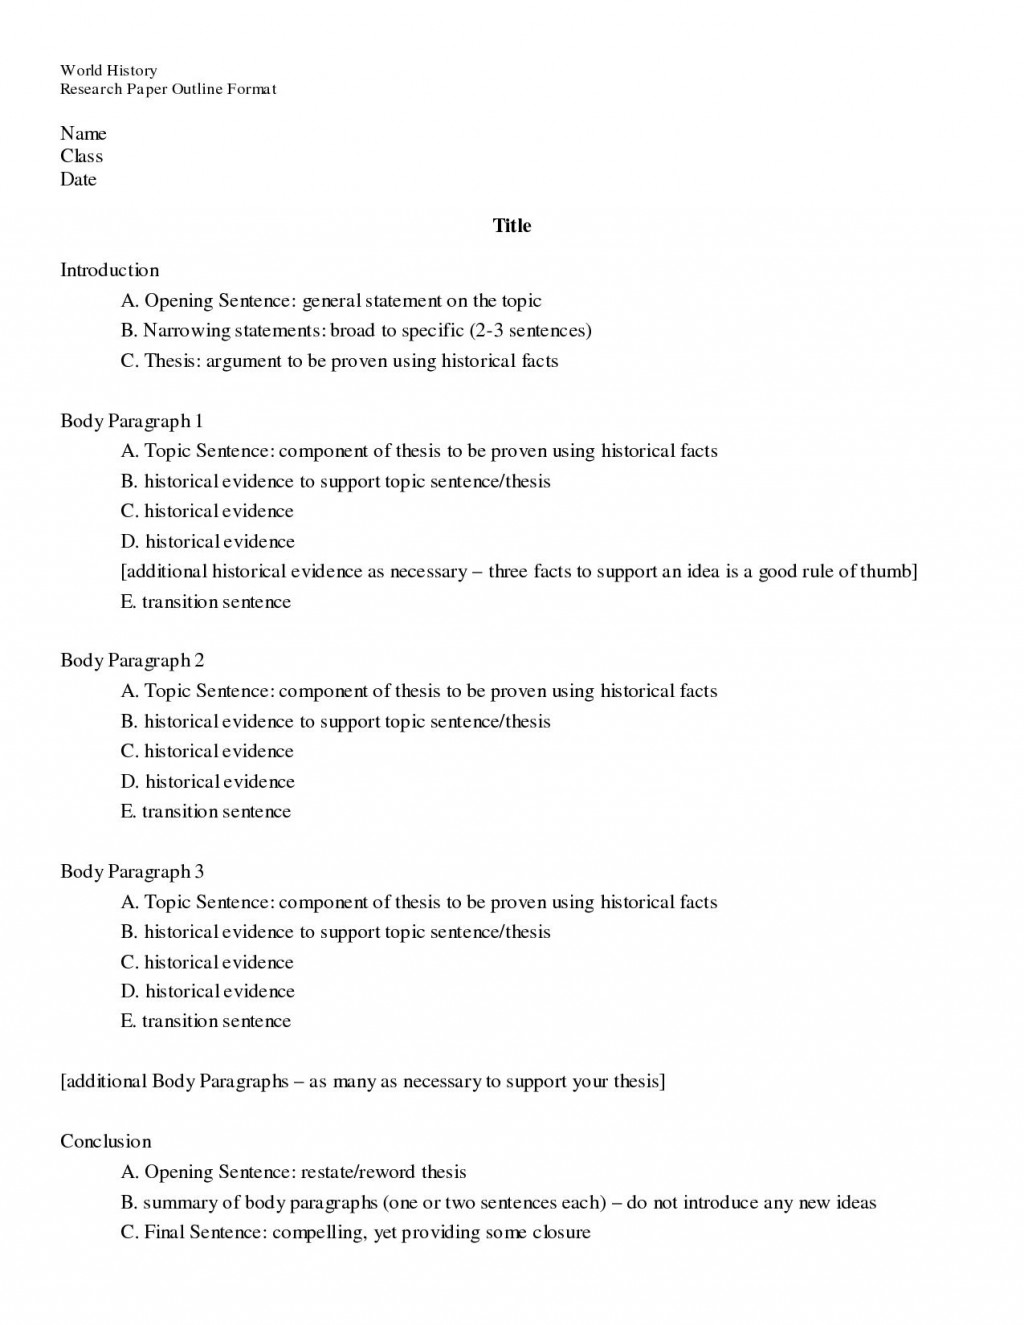 004 Outline Image1 Research Paper Example Of Preliminary Dreaded For Large